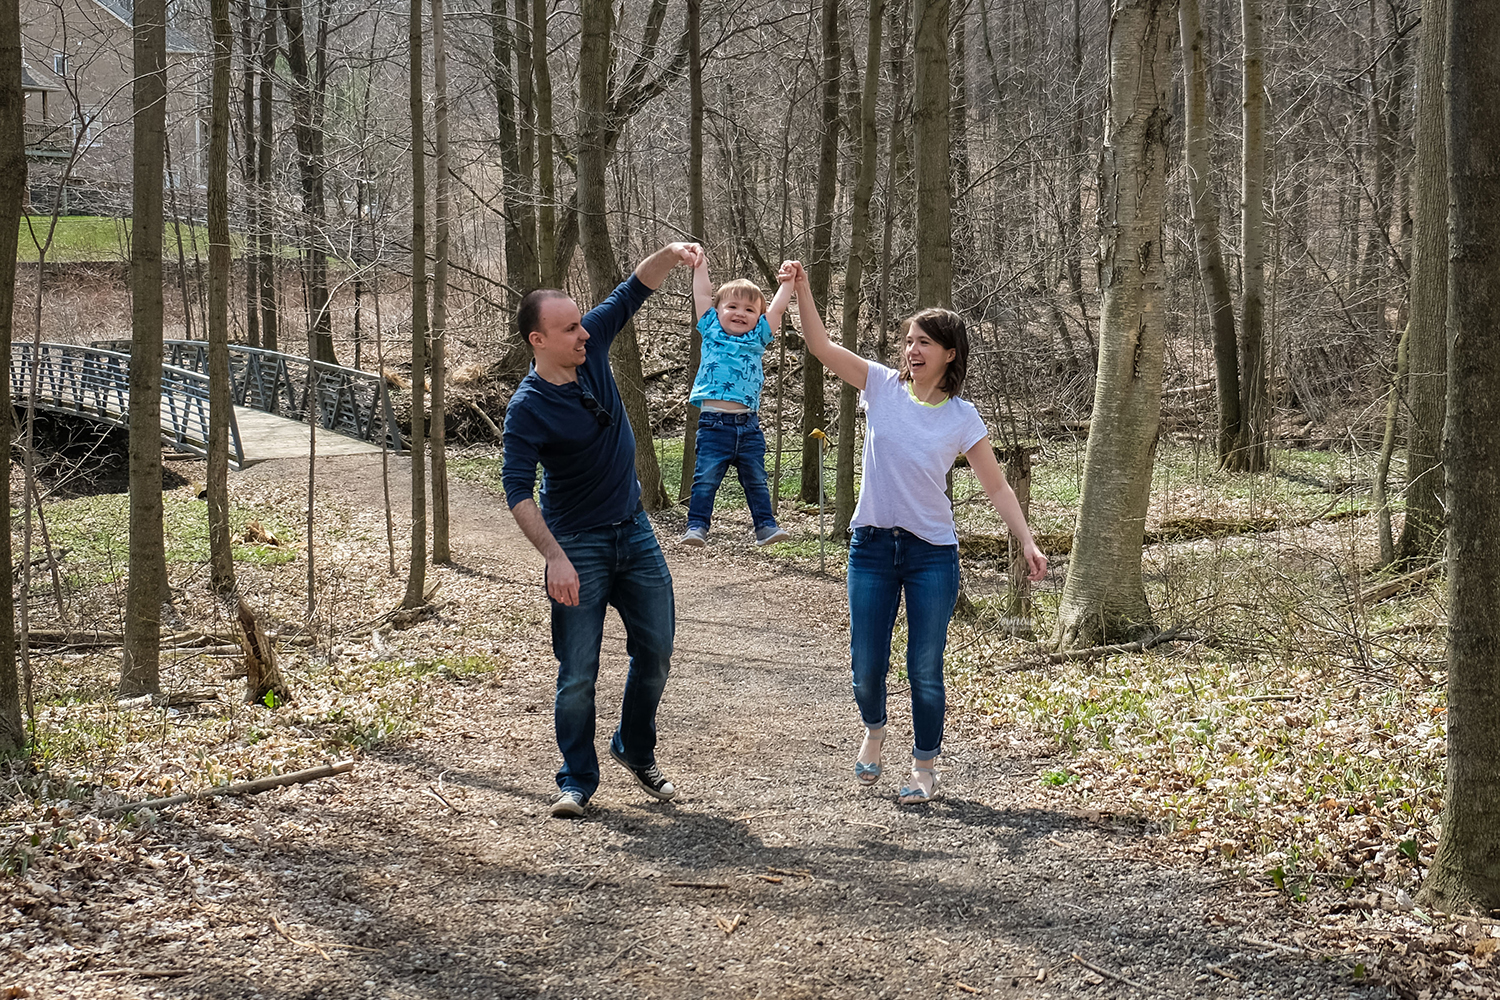 Happy parents swinging a grinning child by the arms on a forest trail Kitchener-Waterloo family photography